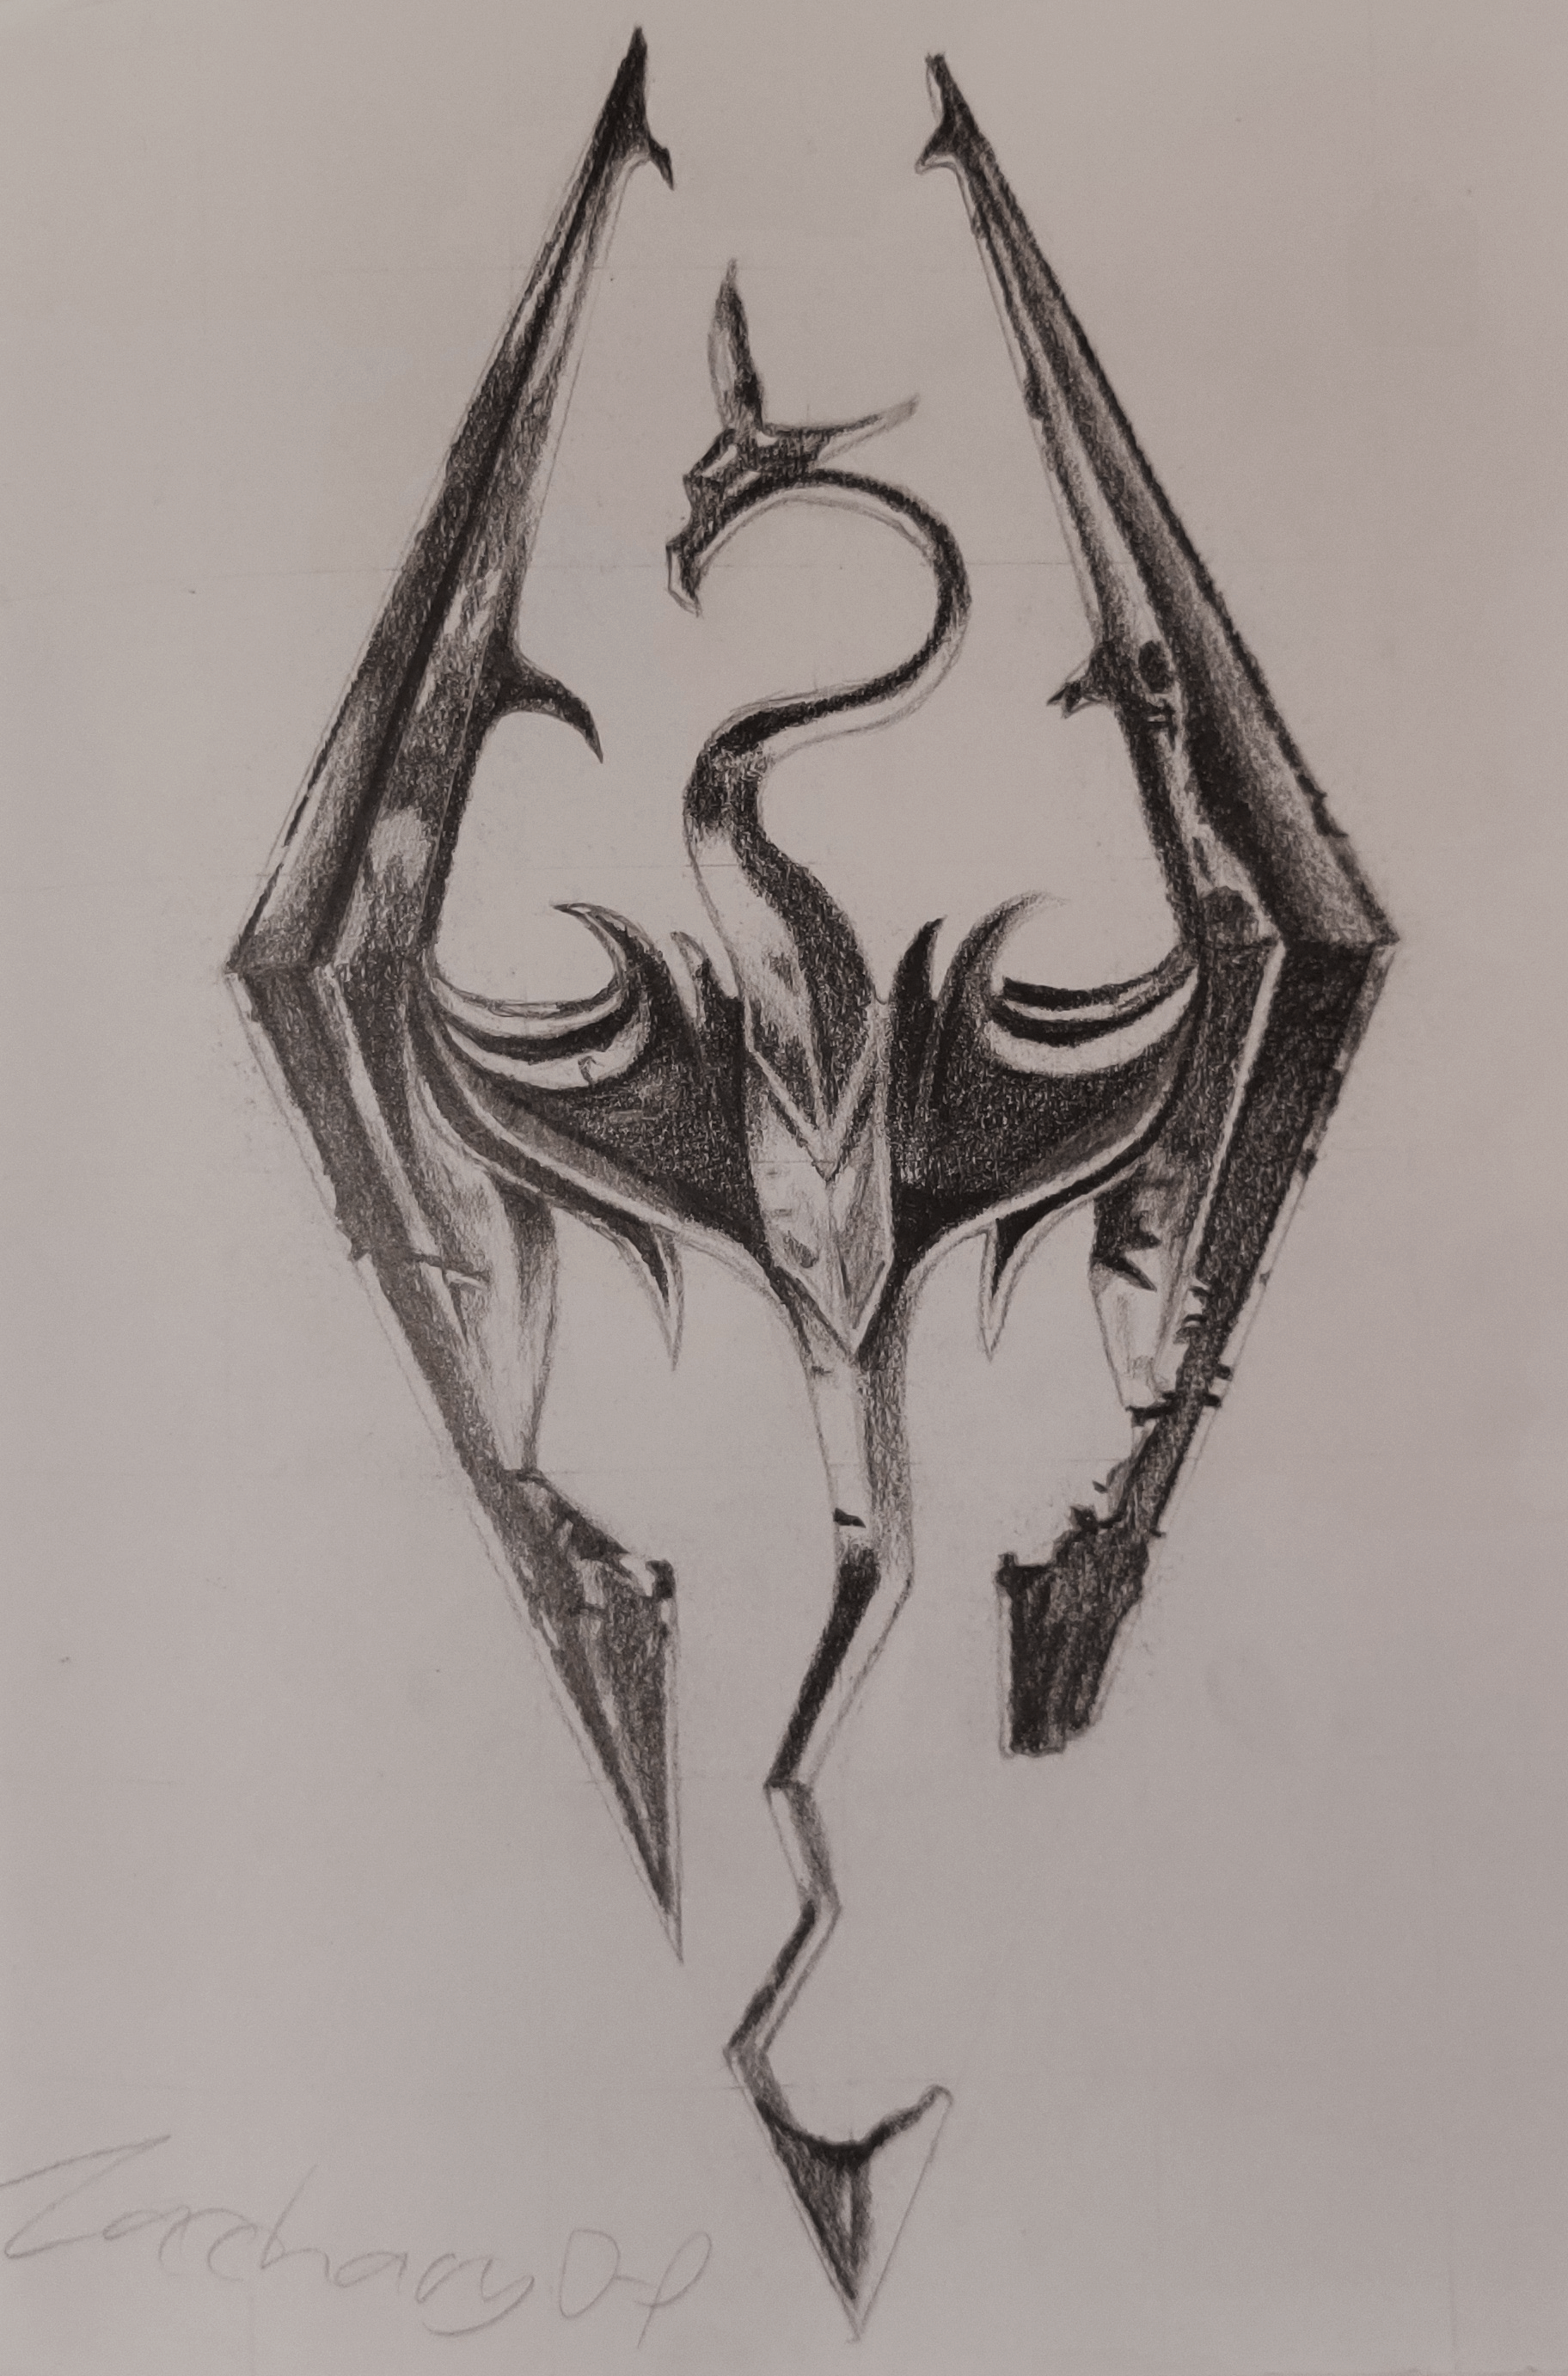 A pencil drawing of the Skyrim logo.